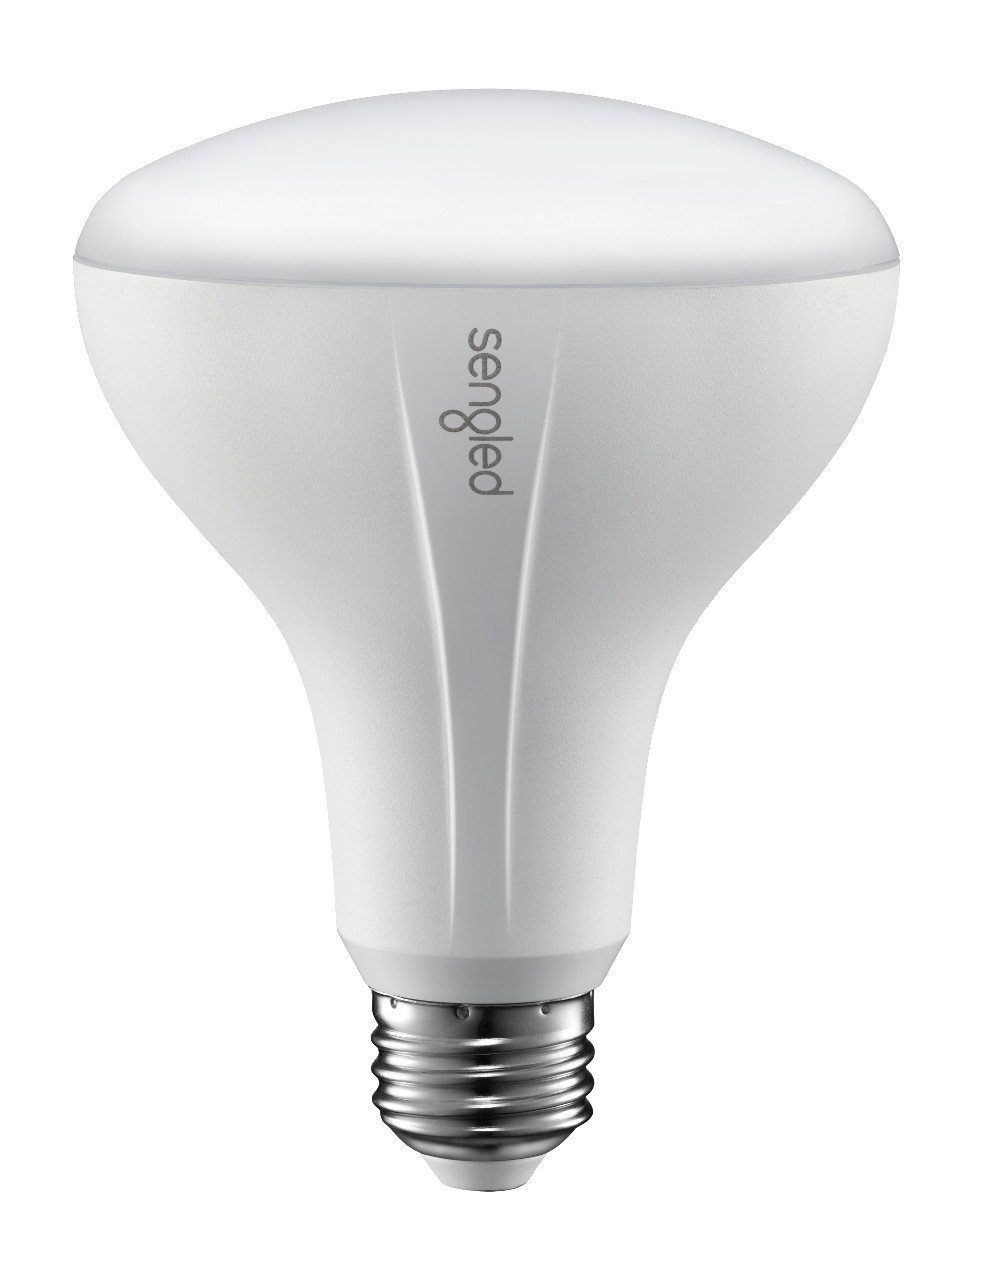 Sengled Element BR30 Smart Bulb